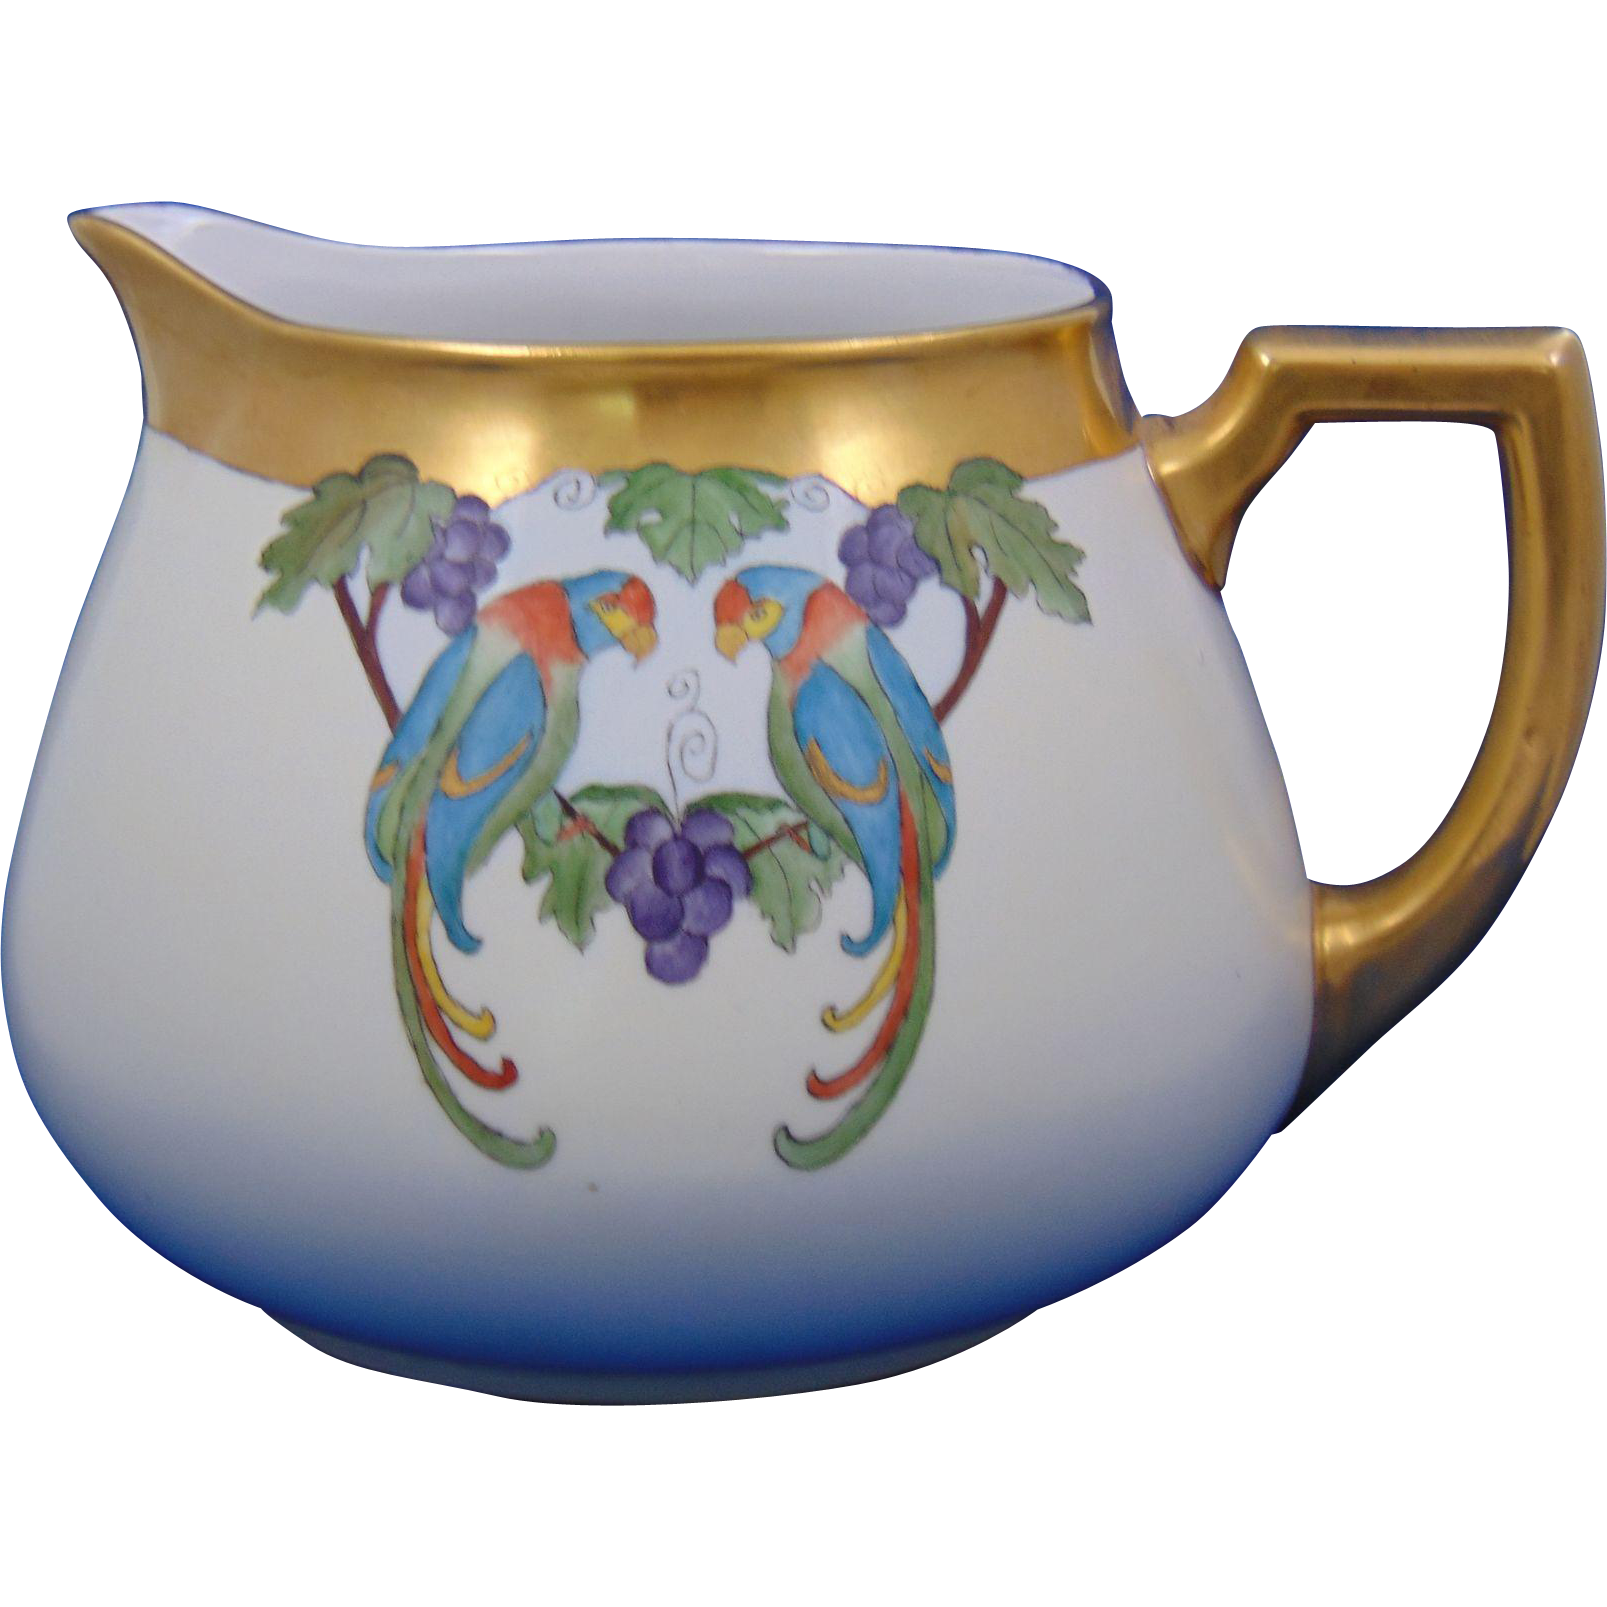 Zeh Scherzer & Co. (ZS&Co.) Arts & Crafts Parrot & Grapes Motif Pitcher (c.1920-1930) - Keramic Studio Design